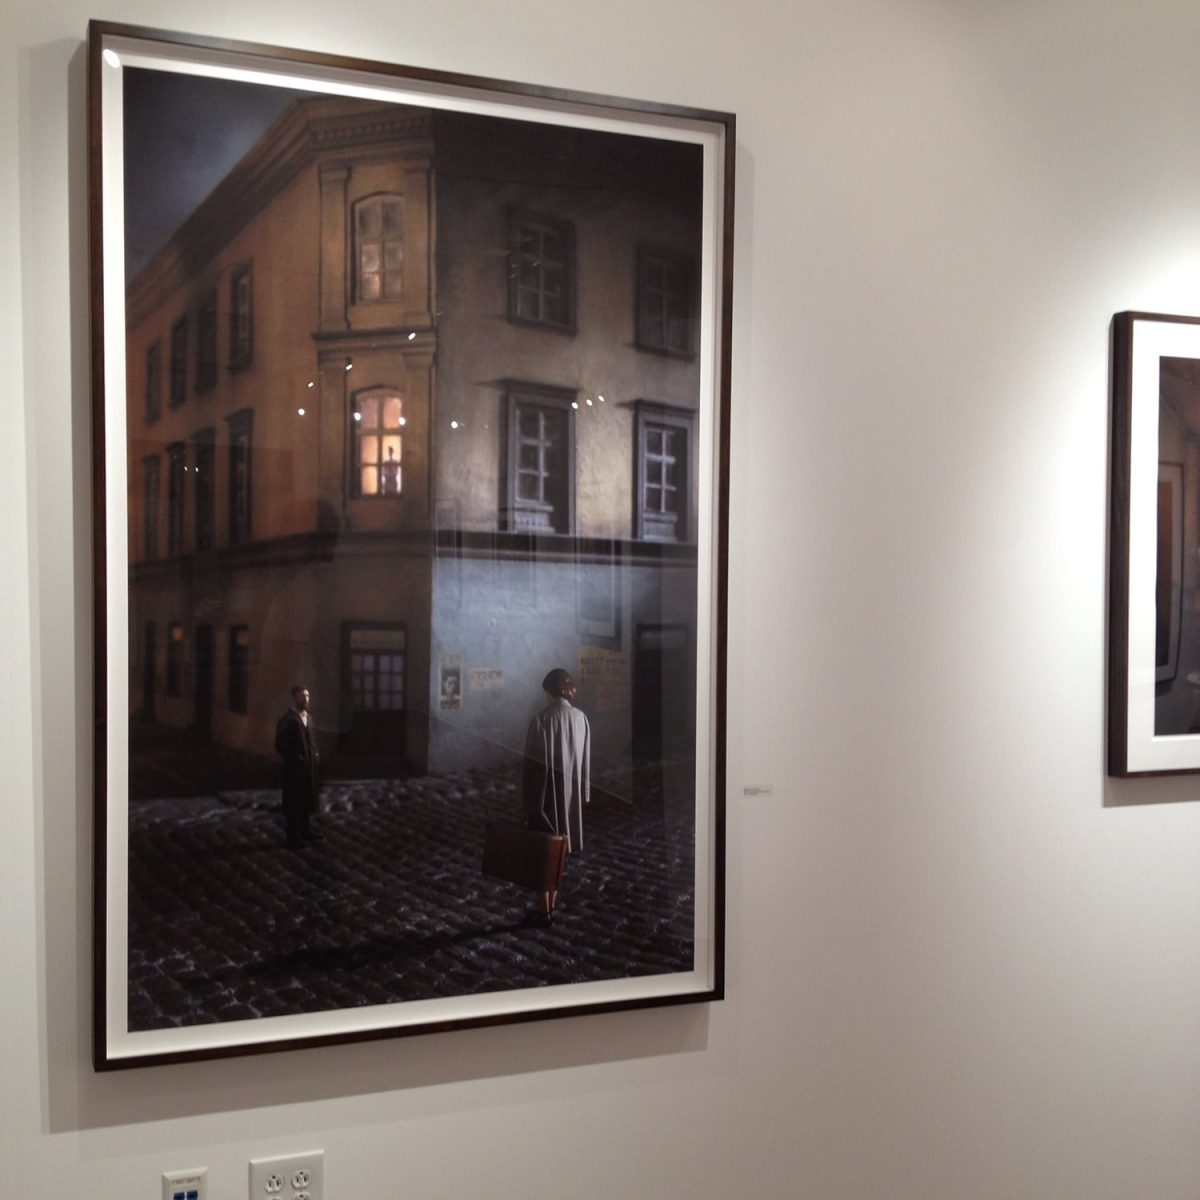 """""""Couple In The Street"""" 2014, by Richard Tuschman. Image from a local exhibition of his work."""